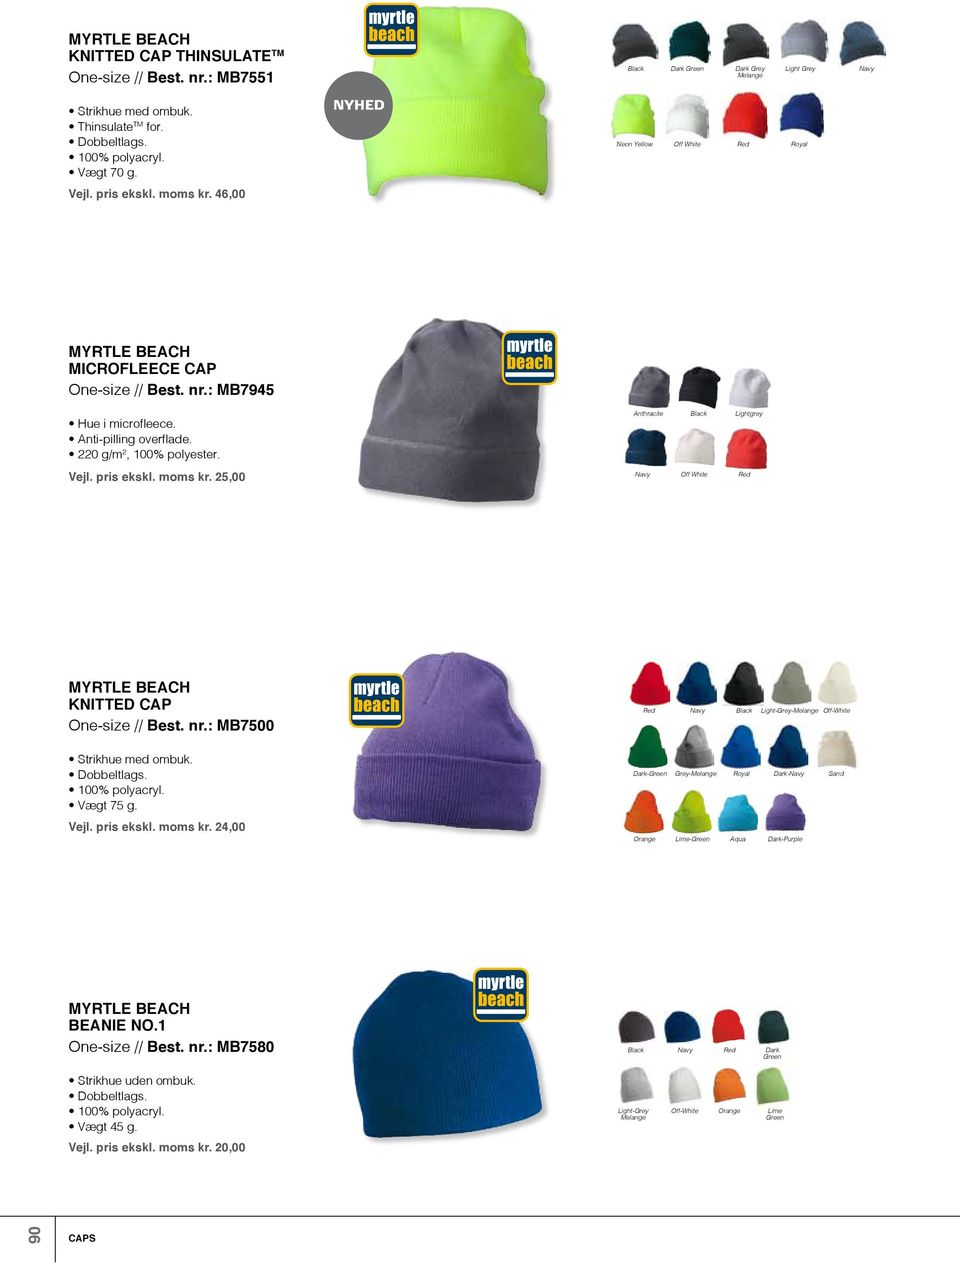 pris ekskl. moms kr. 25,00 Off Knitted Cap One-size // Best. nr.: MB7500 Light-Grey-Melange Off- Strikhue med ombuk. Dobbeltlags. 100% polyacryl. Vægt 75 g. Vejl. pris ekskl. moms kr. 24,00 Dark-Green Grey-Melange Royal Dark- Sand Lime-Green Aqua Dark-Purple Beanie No.